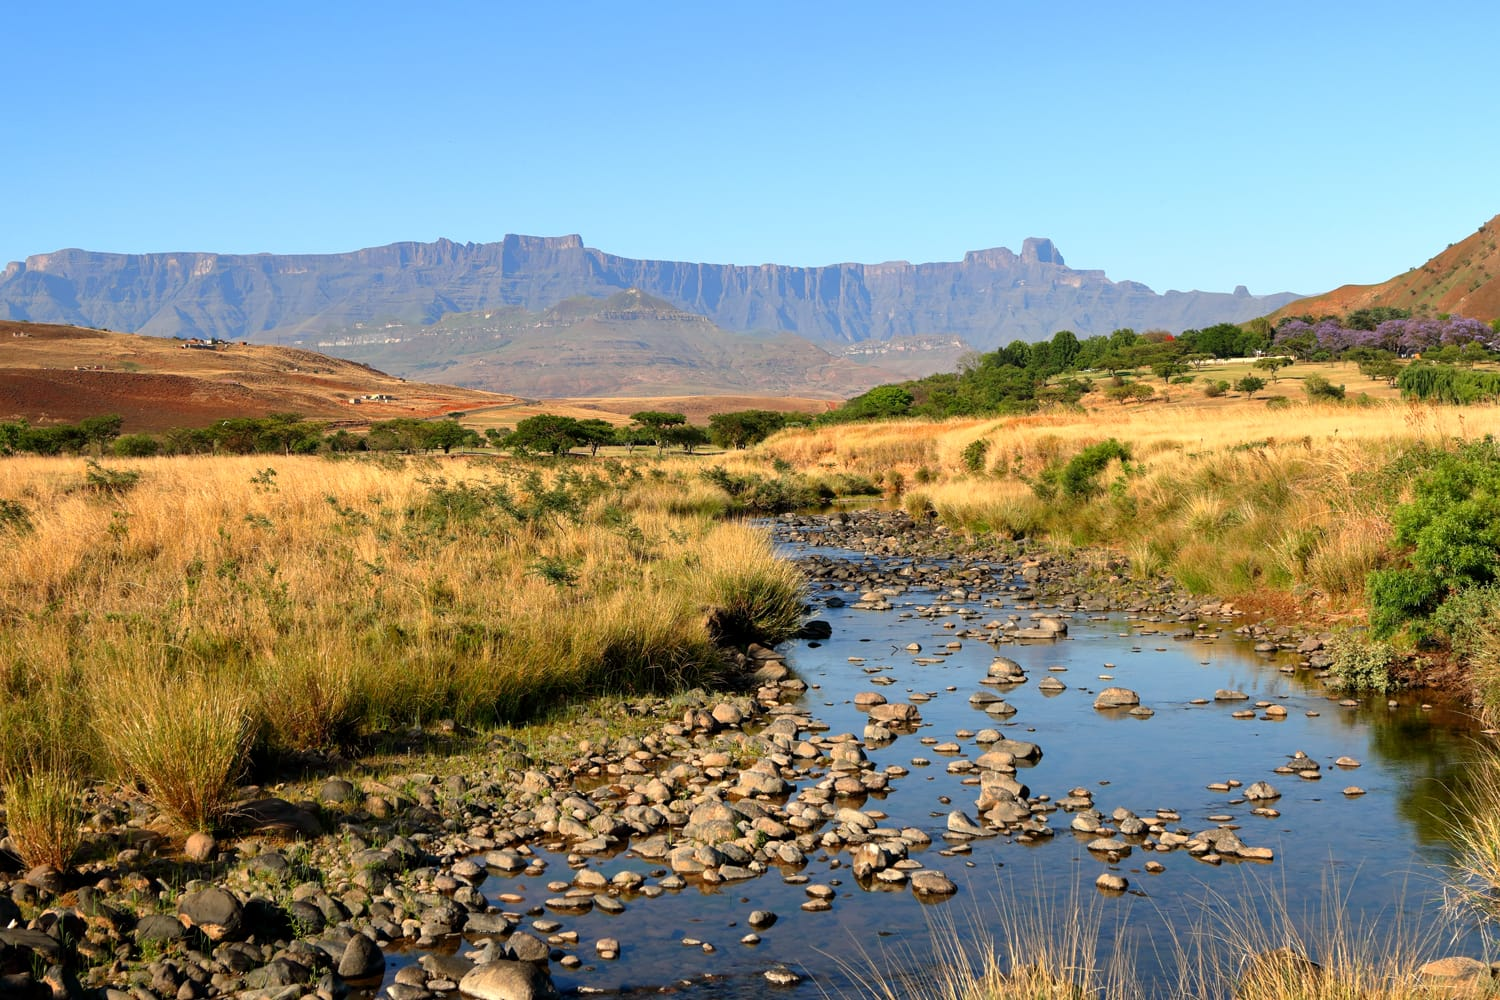 Drakensberg Amphitheatre mountain range in KwaZulu Natal, South Africa